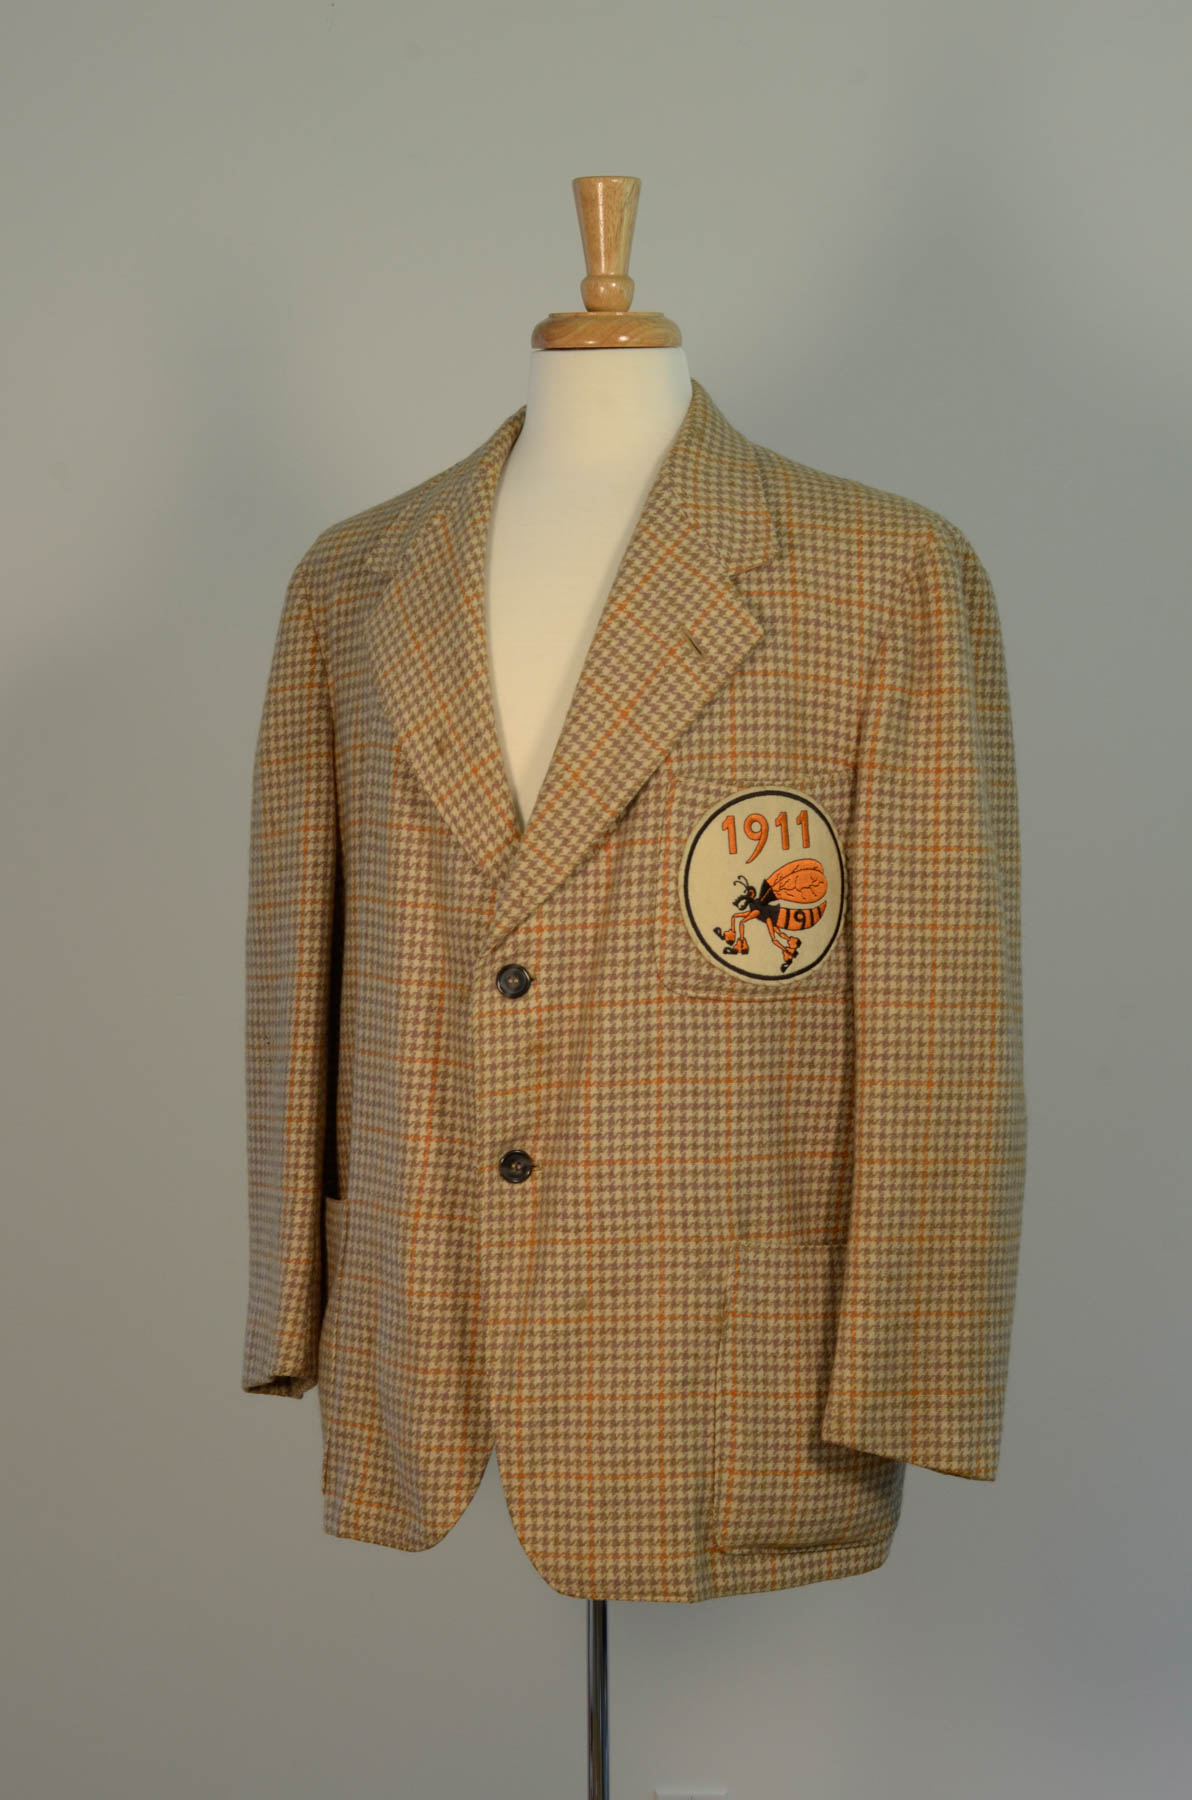 Reunion Jacket 1911 Front